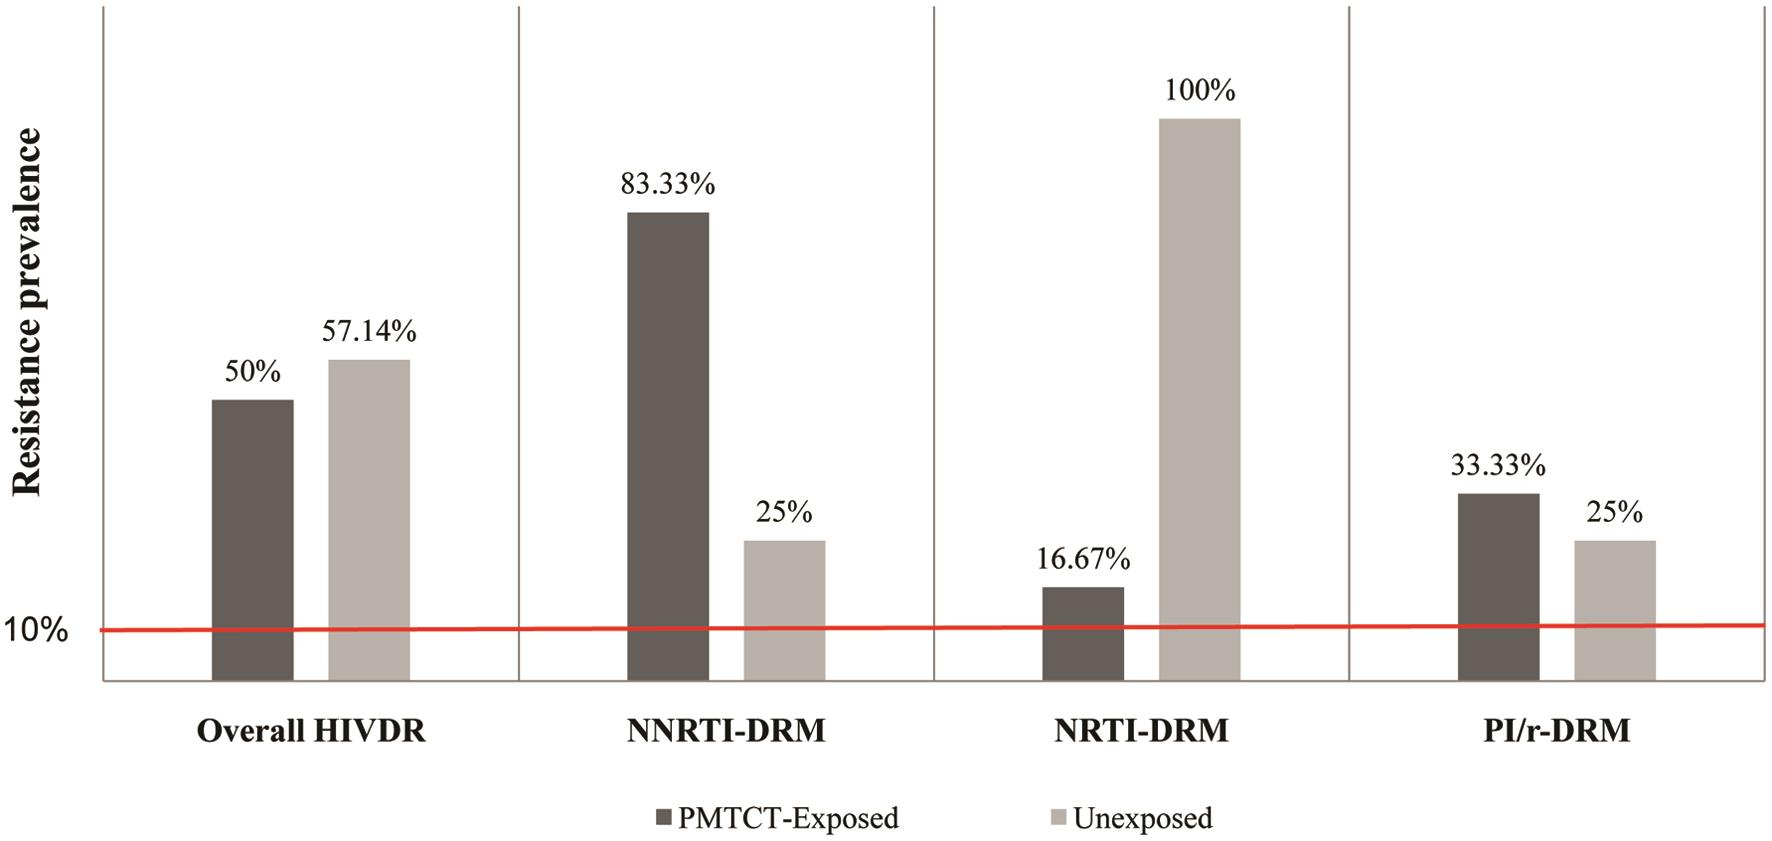 Distribution of pre-treatment HIV drug resistance according to PMTCT-exposure.